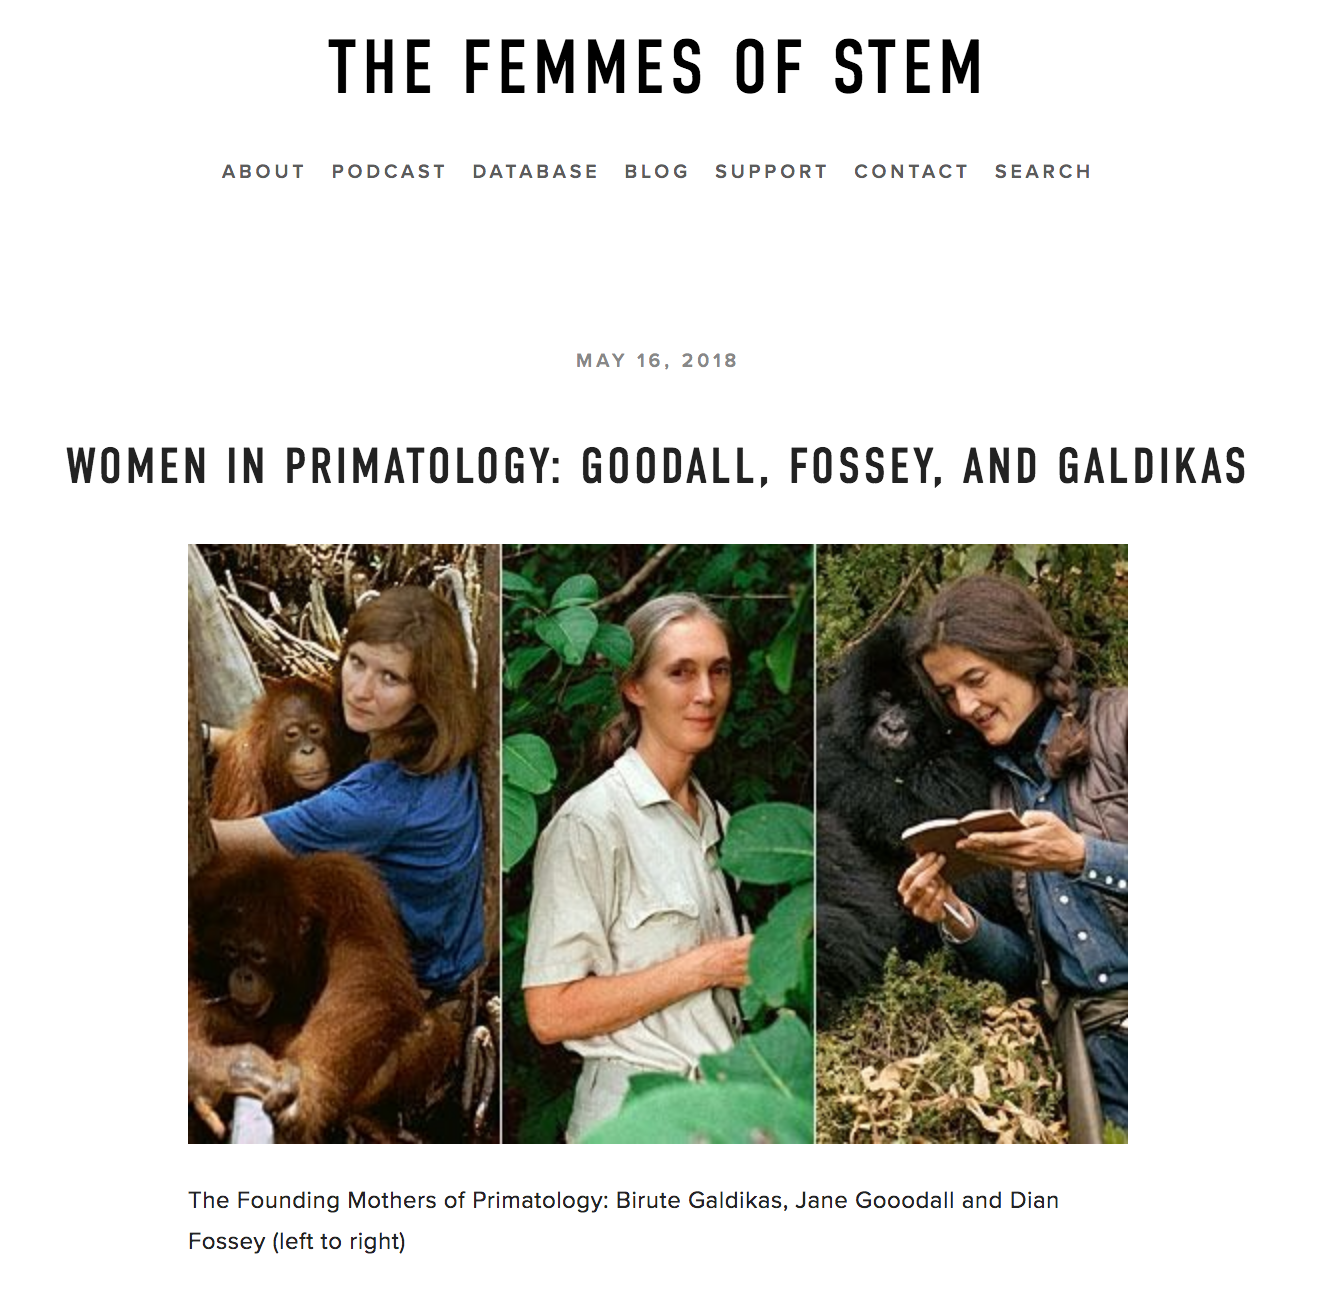 Femmes of STEM - Contributing Member at Femmes of STEM Podcast and Blog: a science history collective dedicated to sharing the stories of women in the history of science, technology, engineering, and mathematics (May 16, 2018)